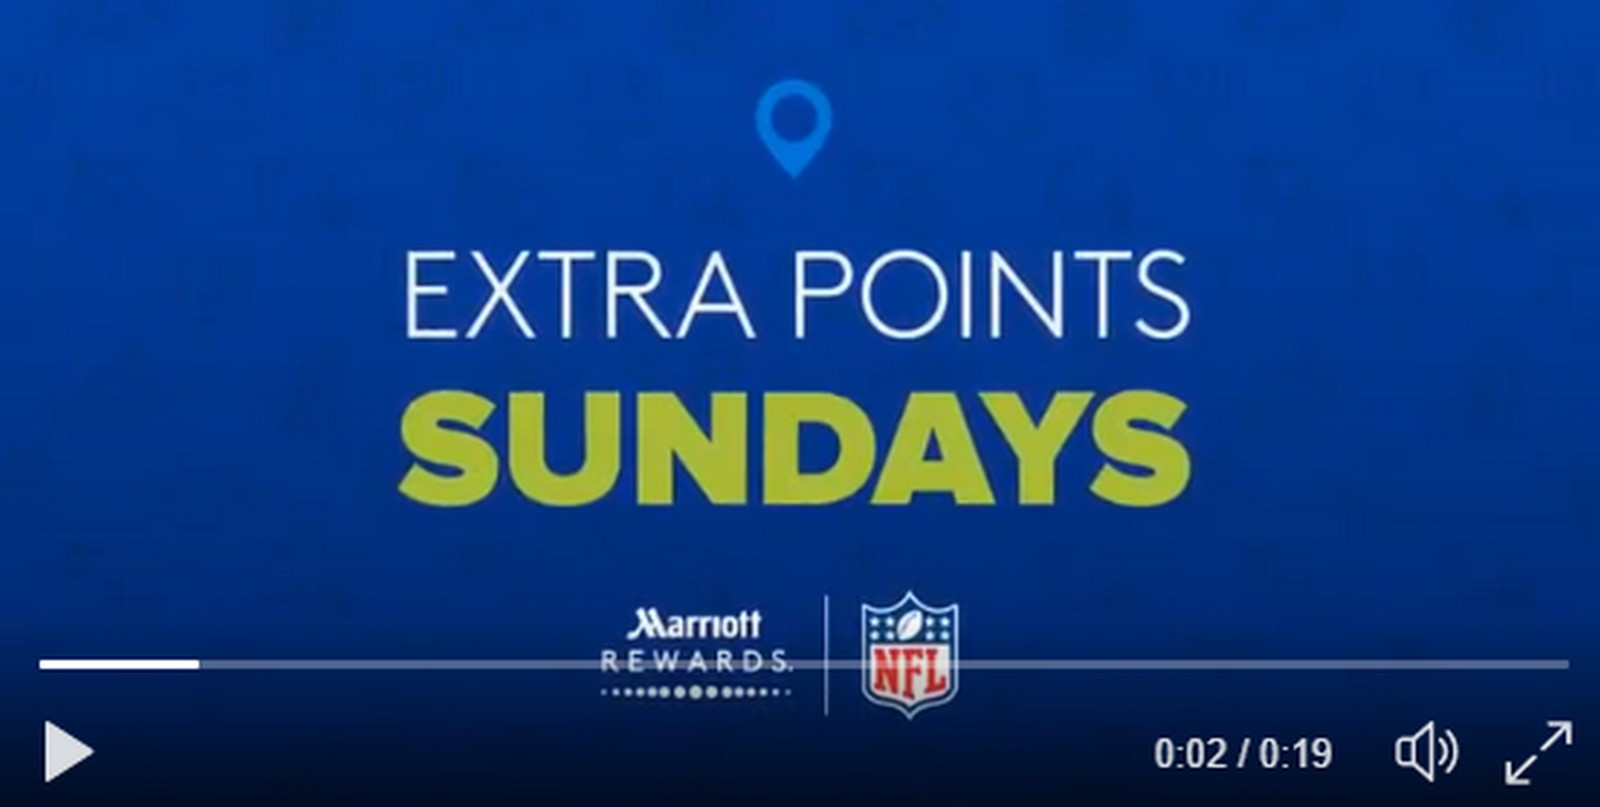 Easy Marriott Rewards Points